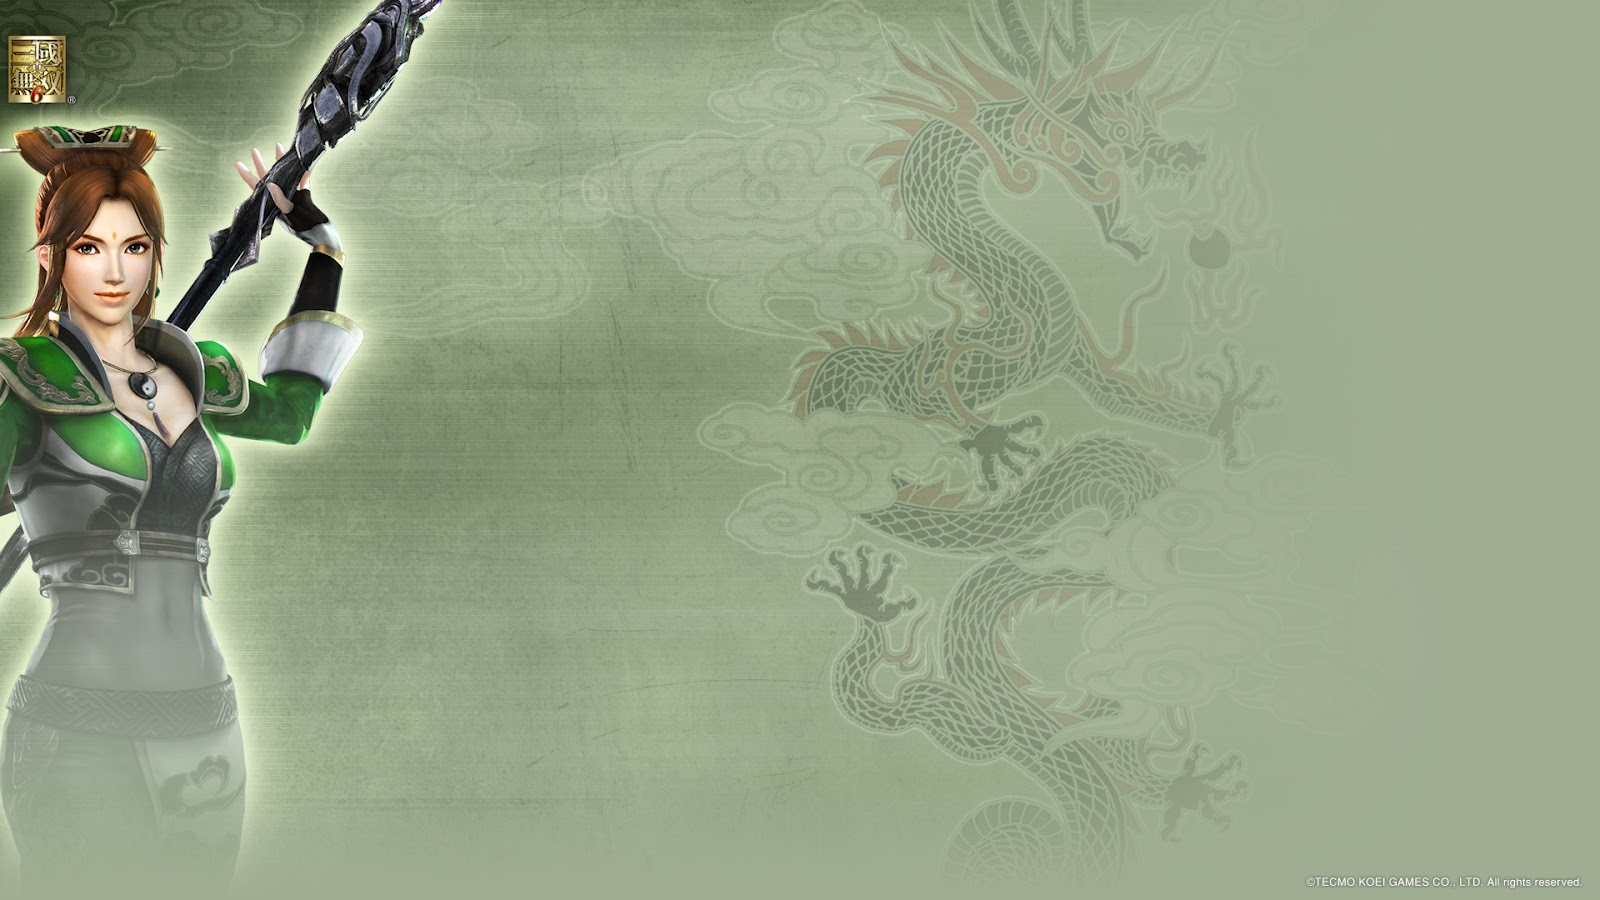 http://4.bp.blogspot.com/-jCgWdgMhNKk/UBVRalG2bFI/AAAAAAAAE-E/K4c9VB26cpo/s1600/dynasty+warriors+7+wallpapers+8.jpg